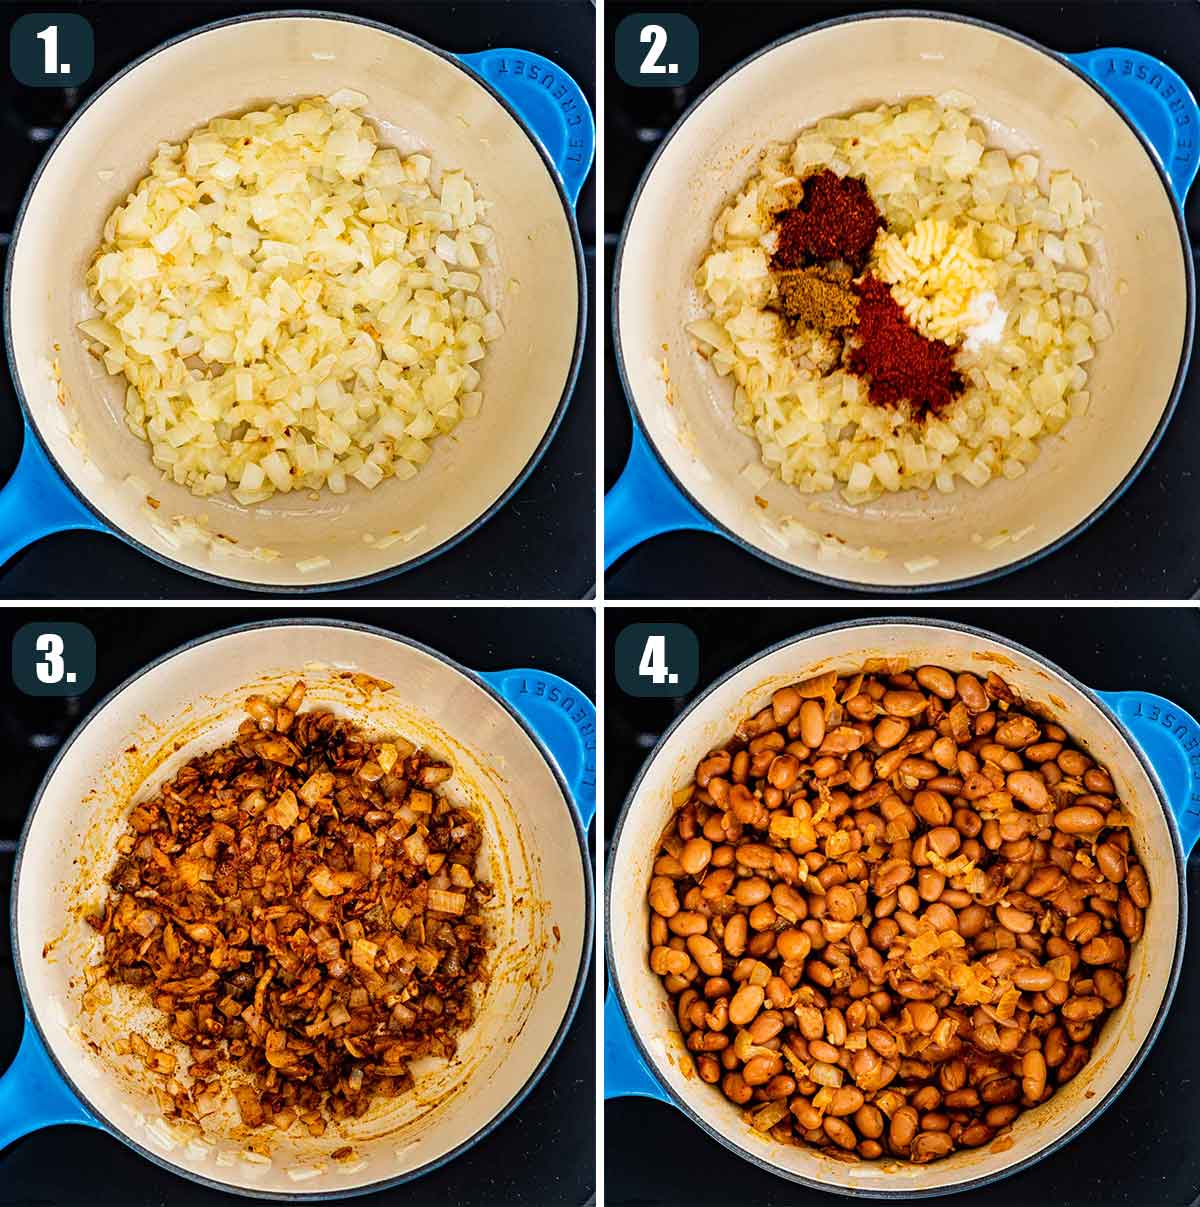 detailed process shots showing how to make refried beans.